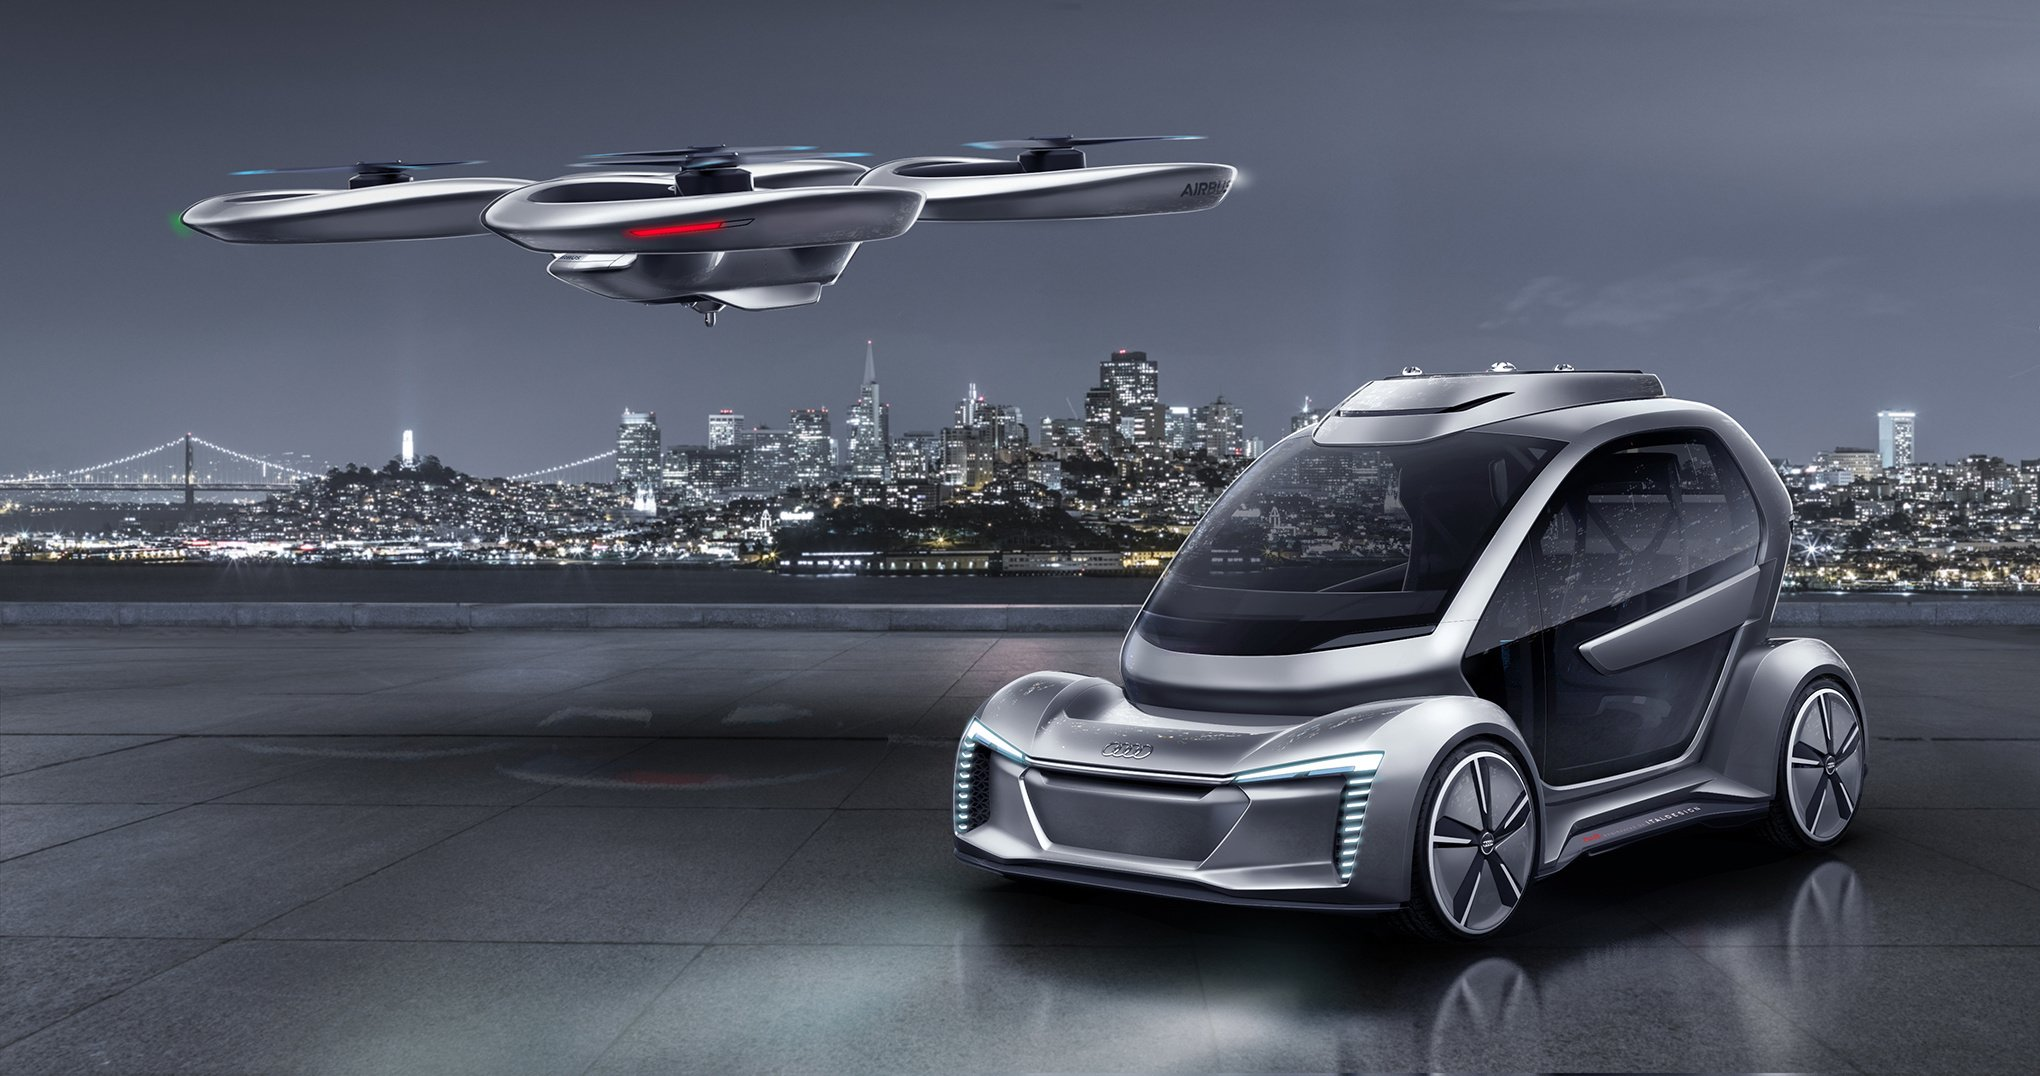 Audi Unveils The Latest Version Of Its Flying Car Concept - Audi car versions